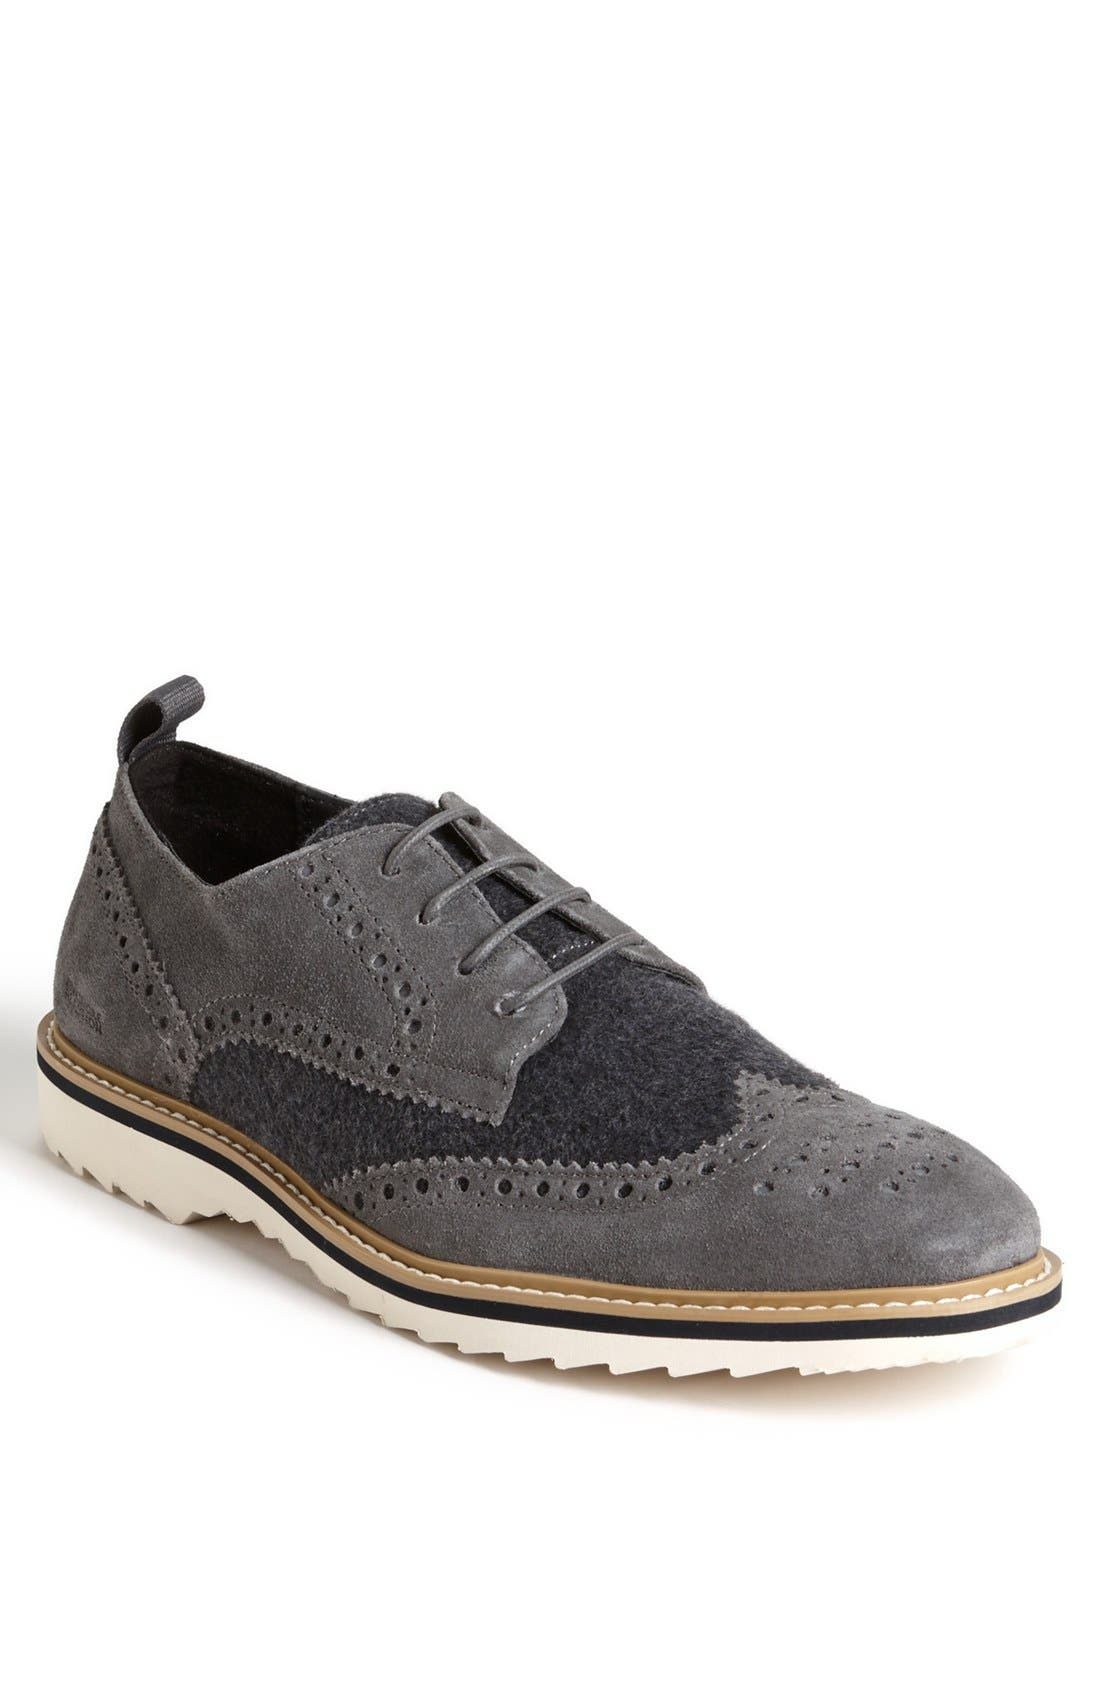 Alternate Image 1 Selected - Kenneth Cole Reaction 'Fever Pitch' Spectator Shoe